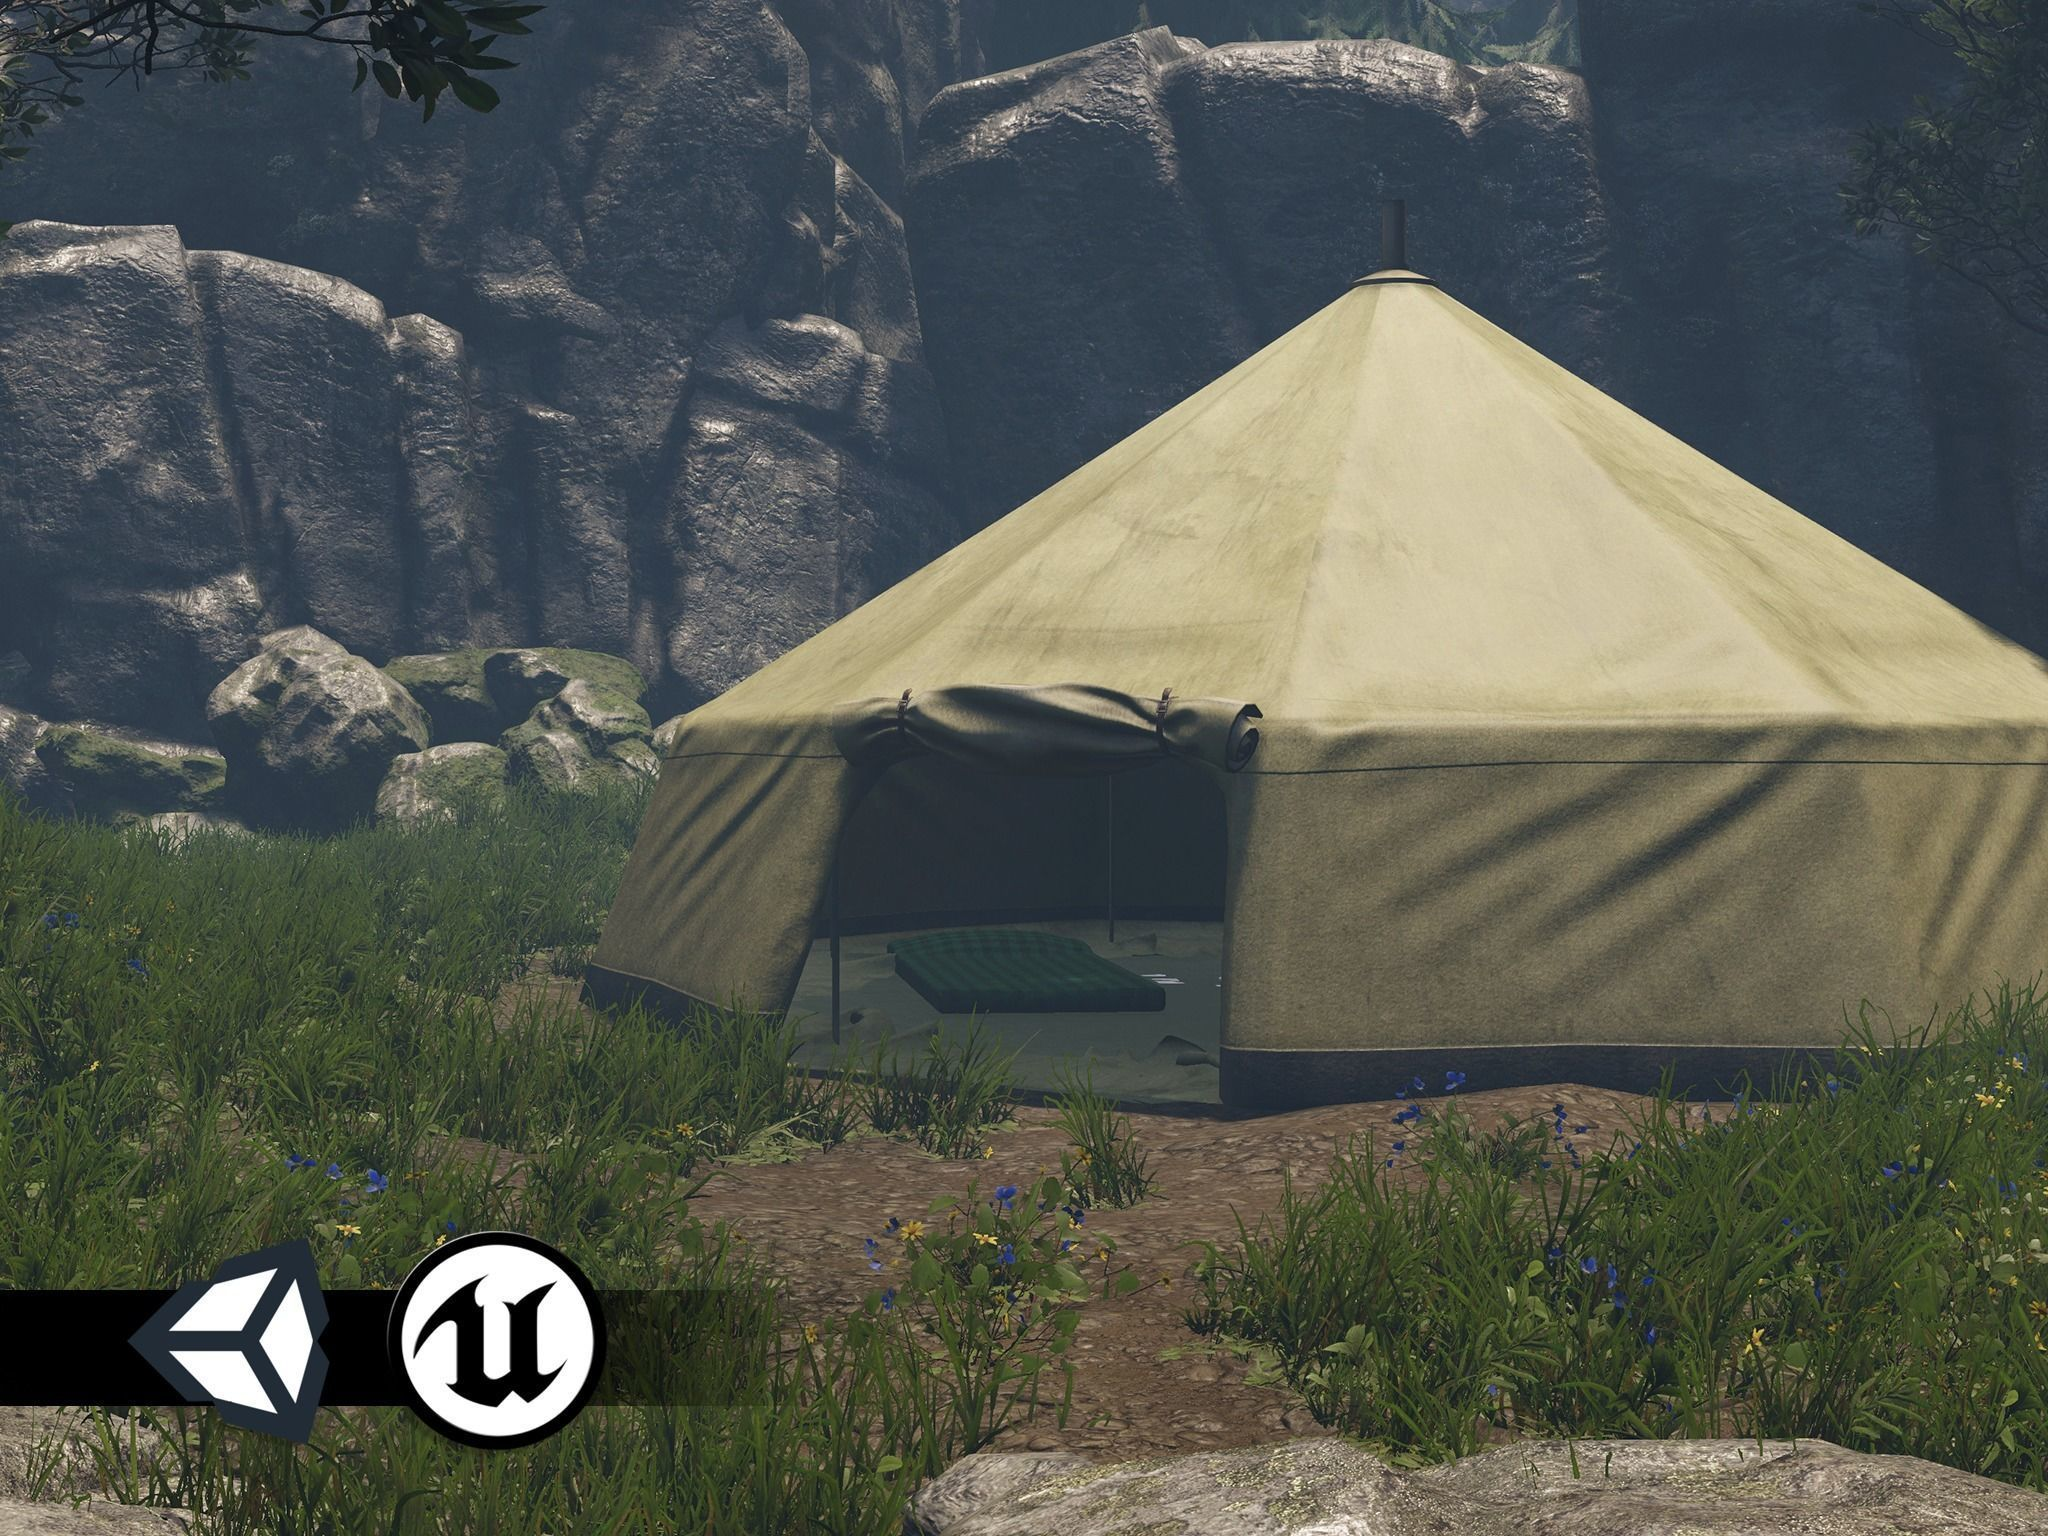 PBR Assets - Camping Tent